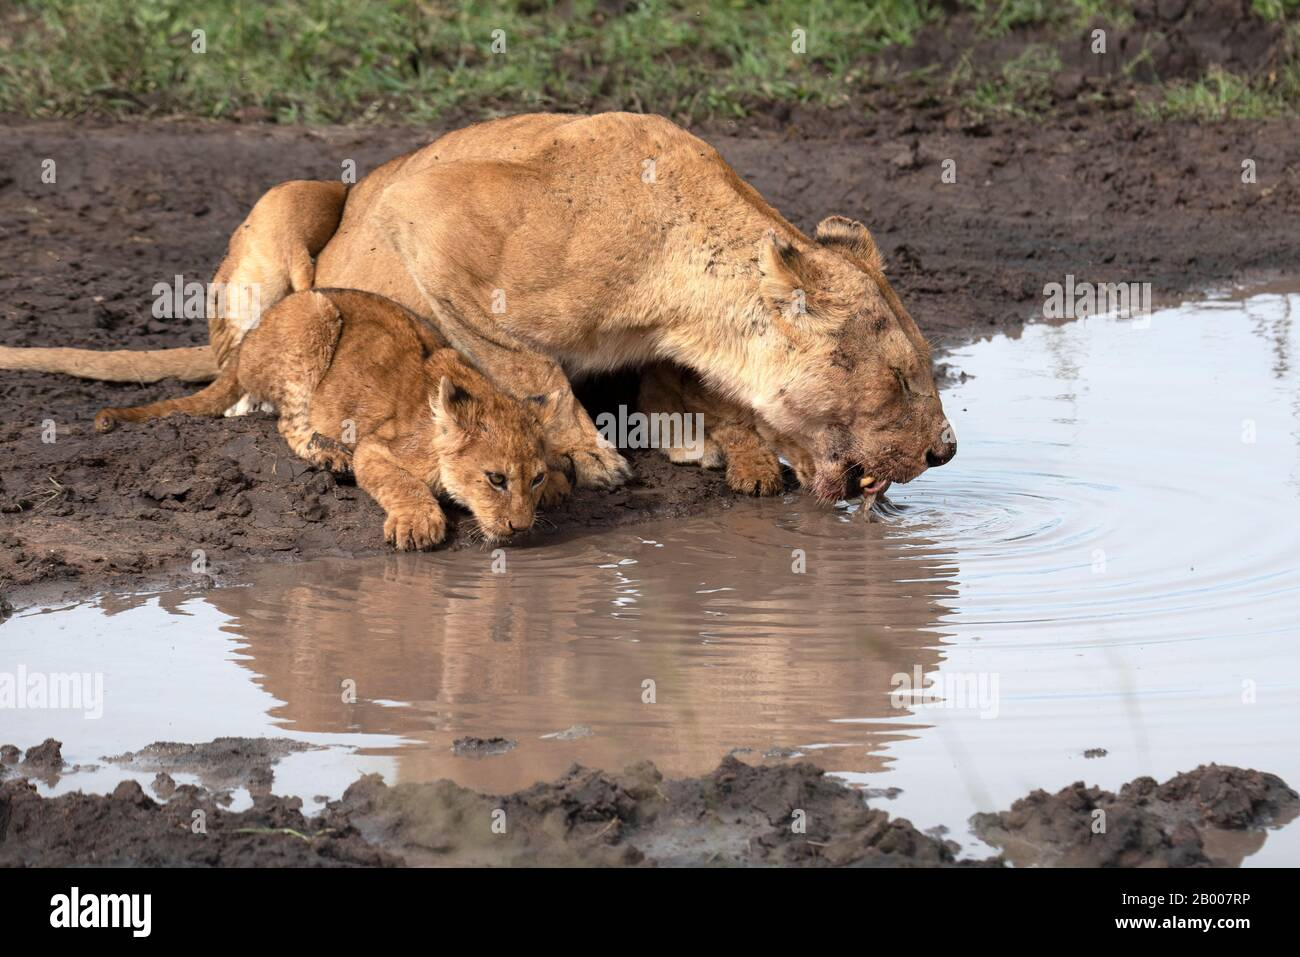 Lioness and cub of the Serengeti having a drink after a meal Stock Photo